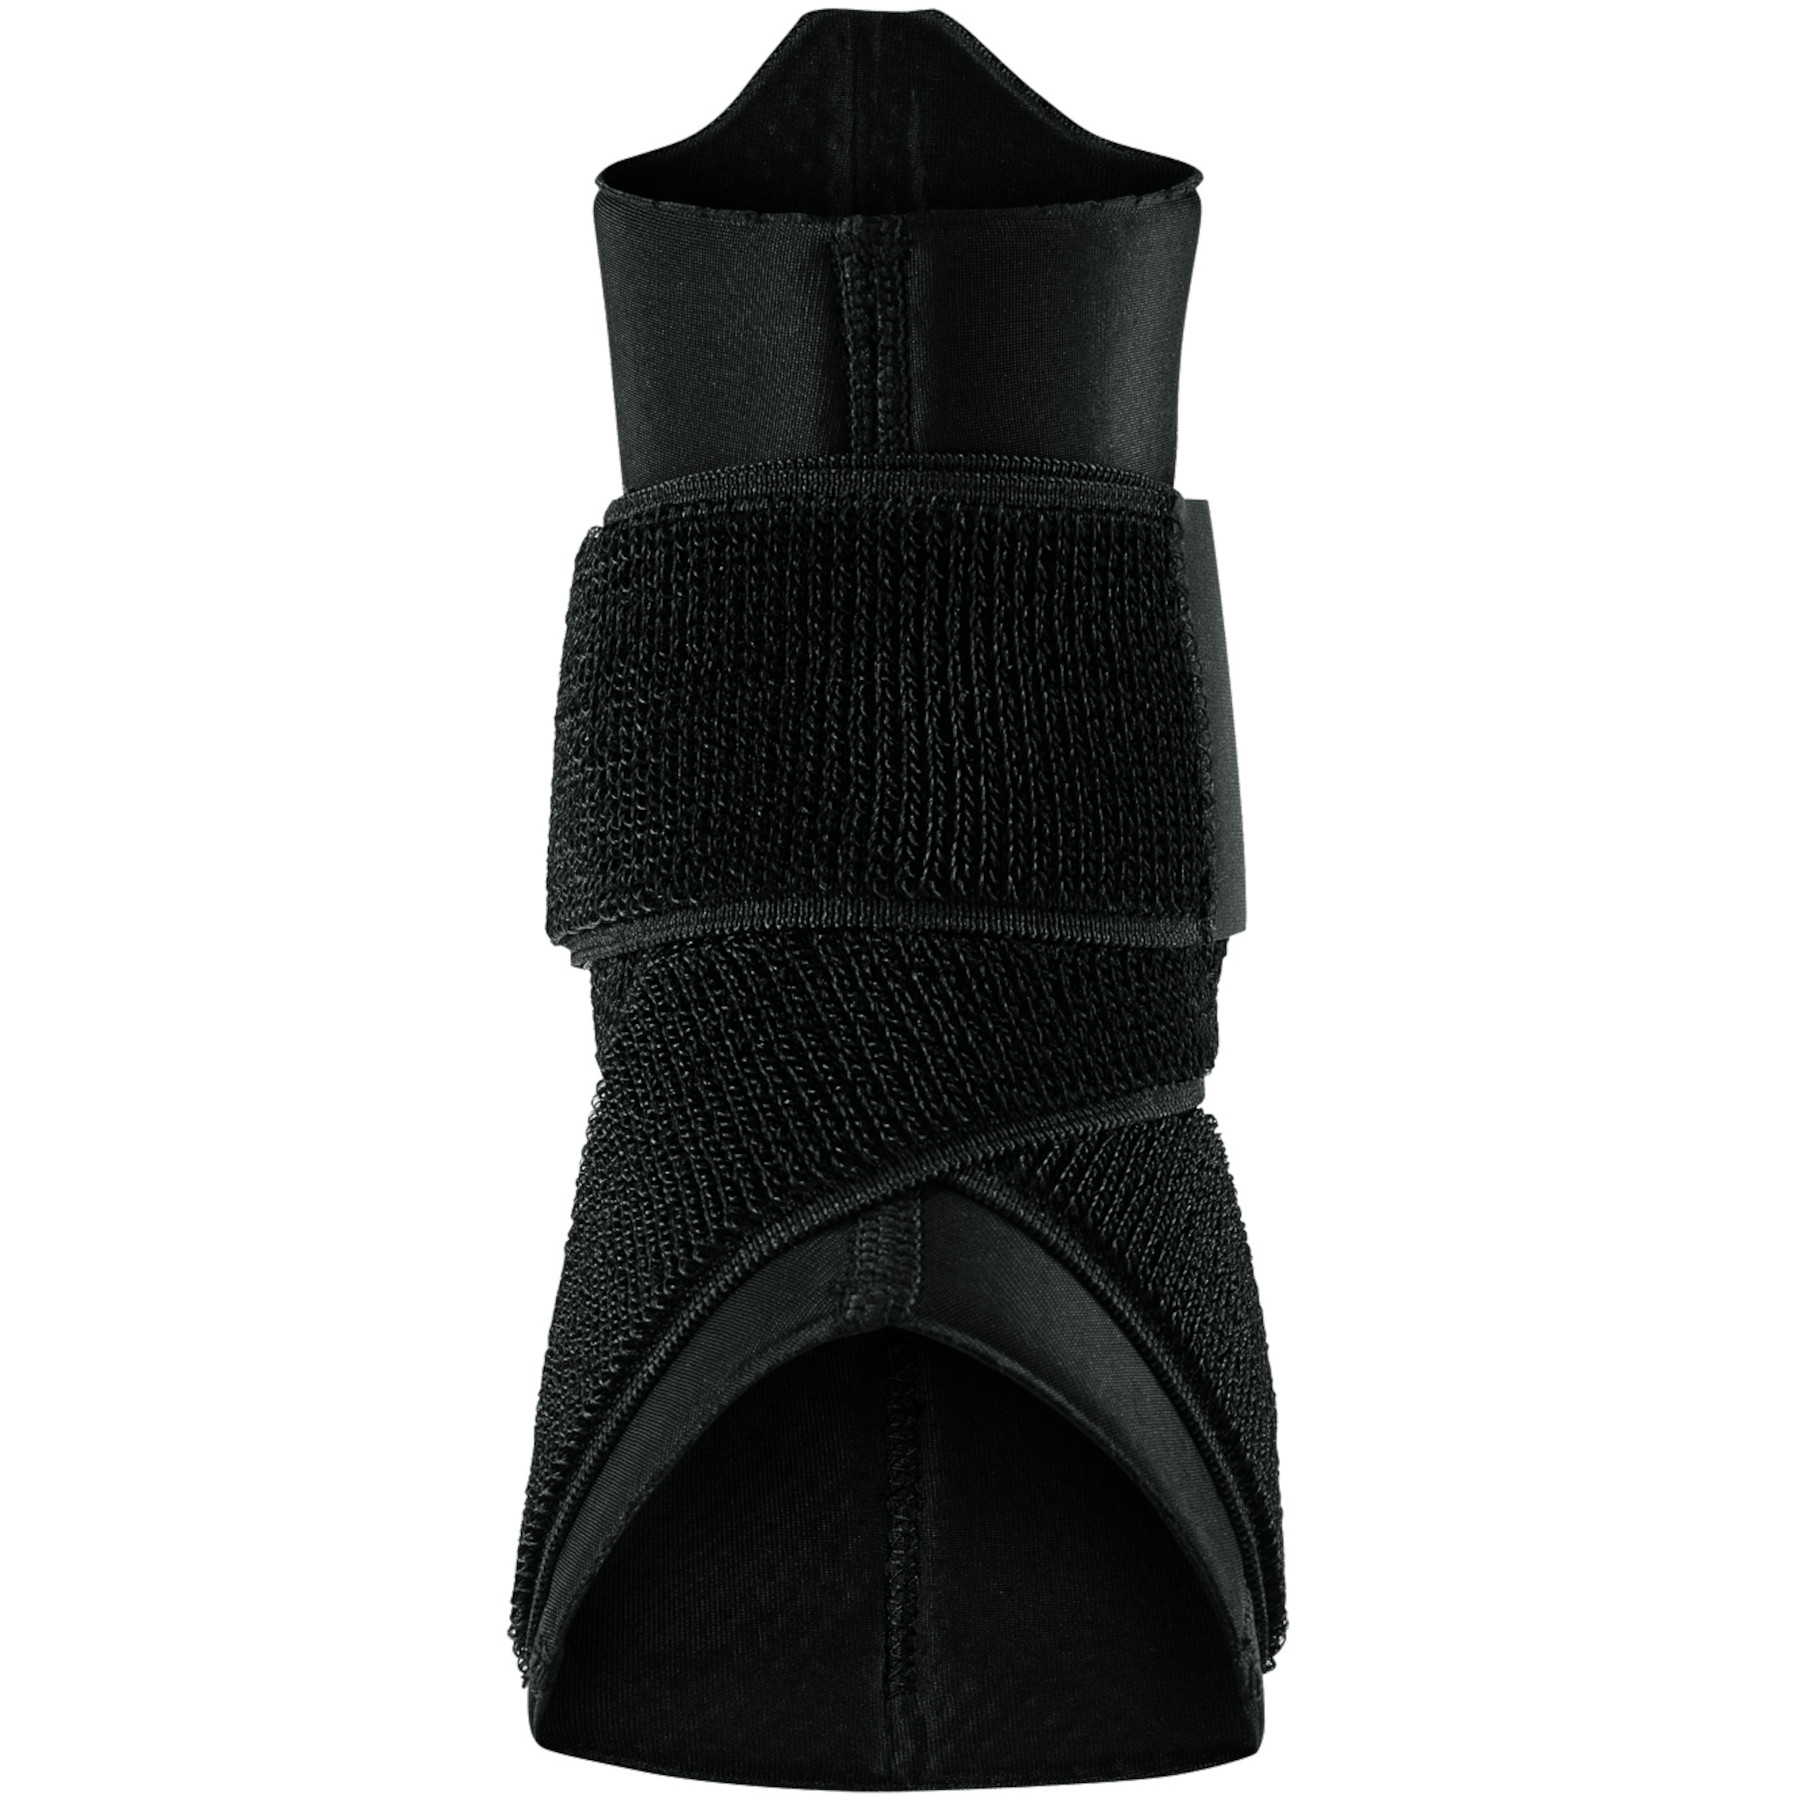 Image of Nike Pro Ankle Sleeve with Strap - black/white 010